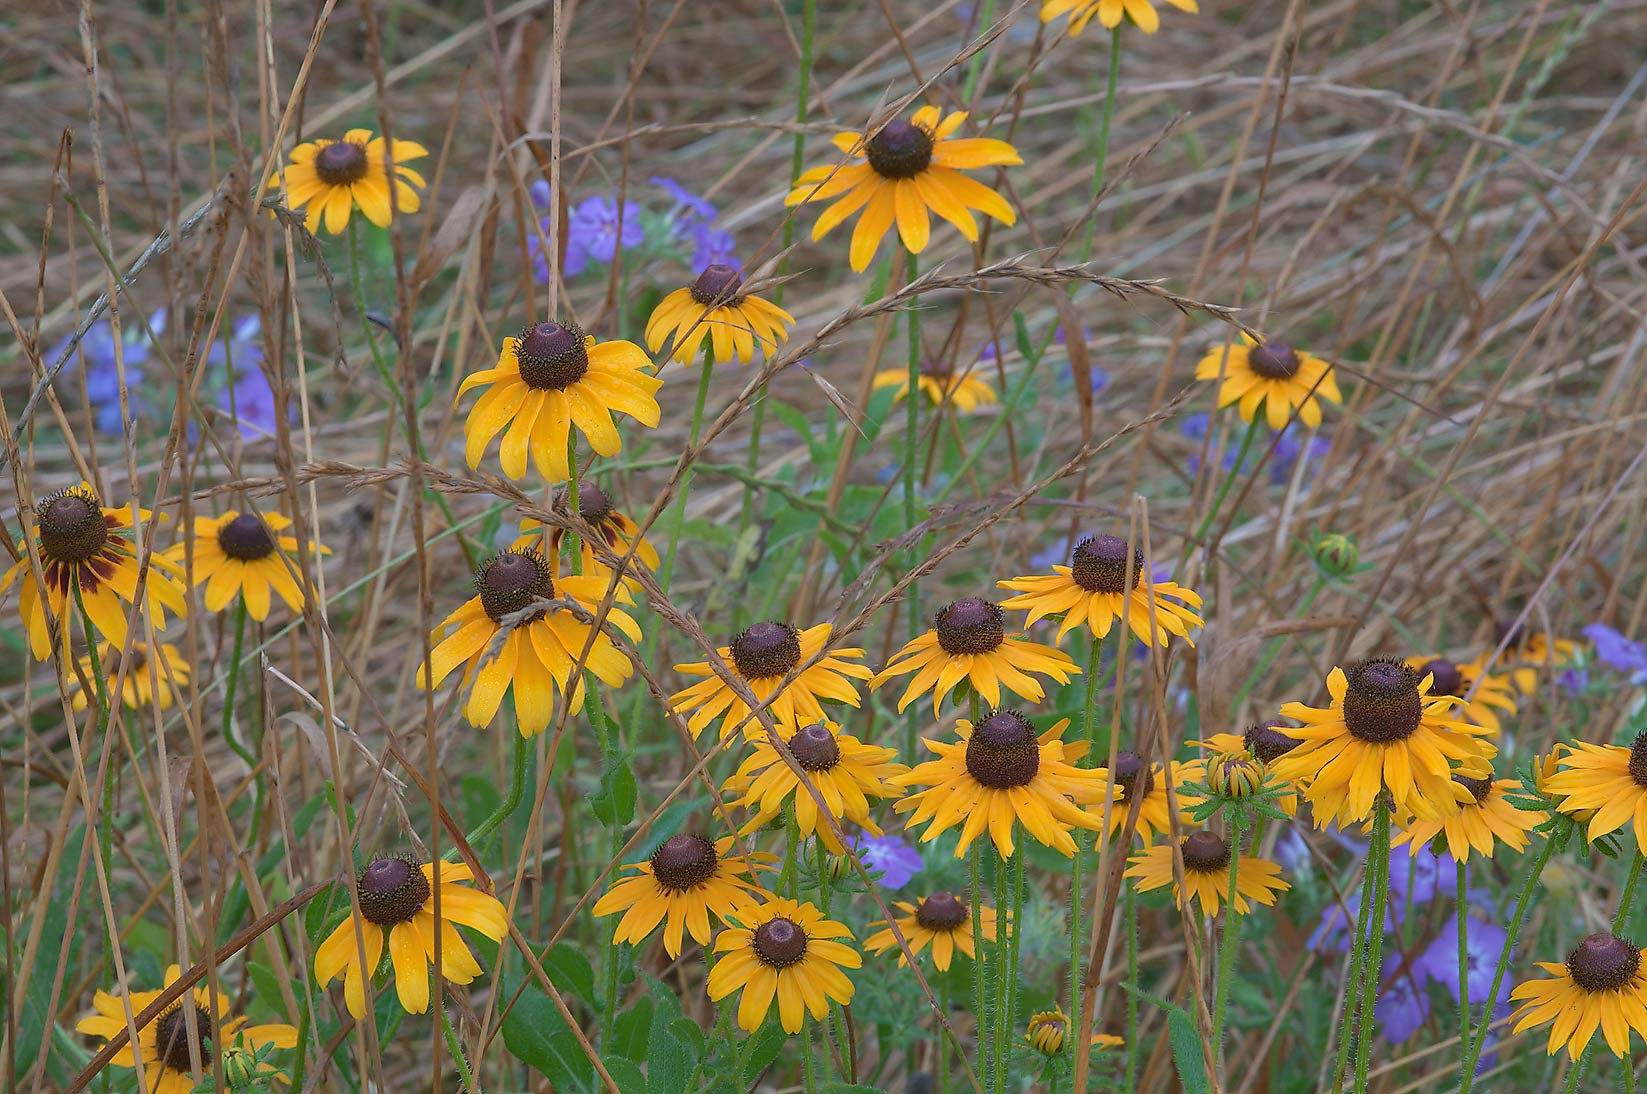 Black eyed susan and blue phlox in Washington-on...State Historic Site. Washington, Texas